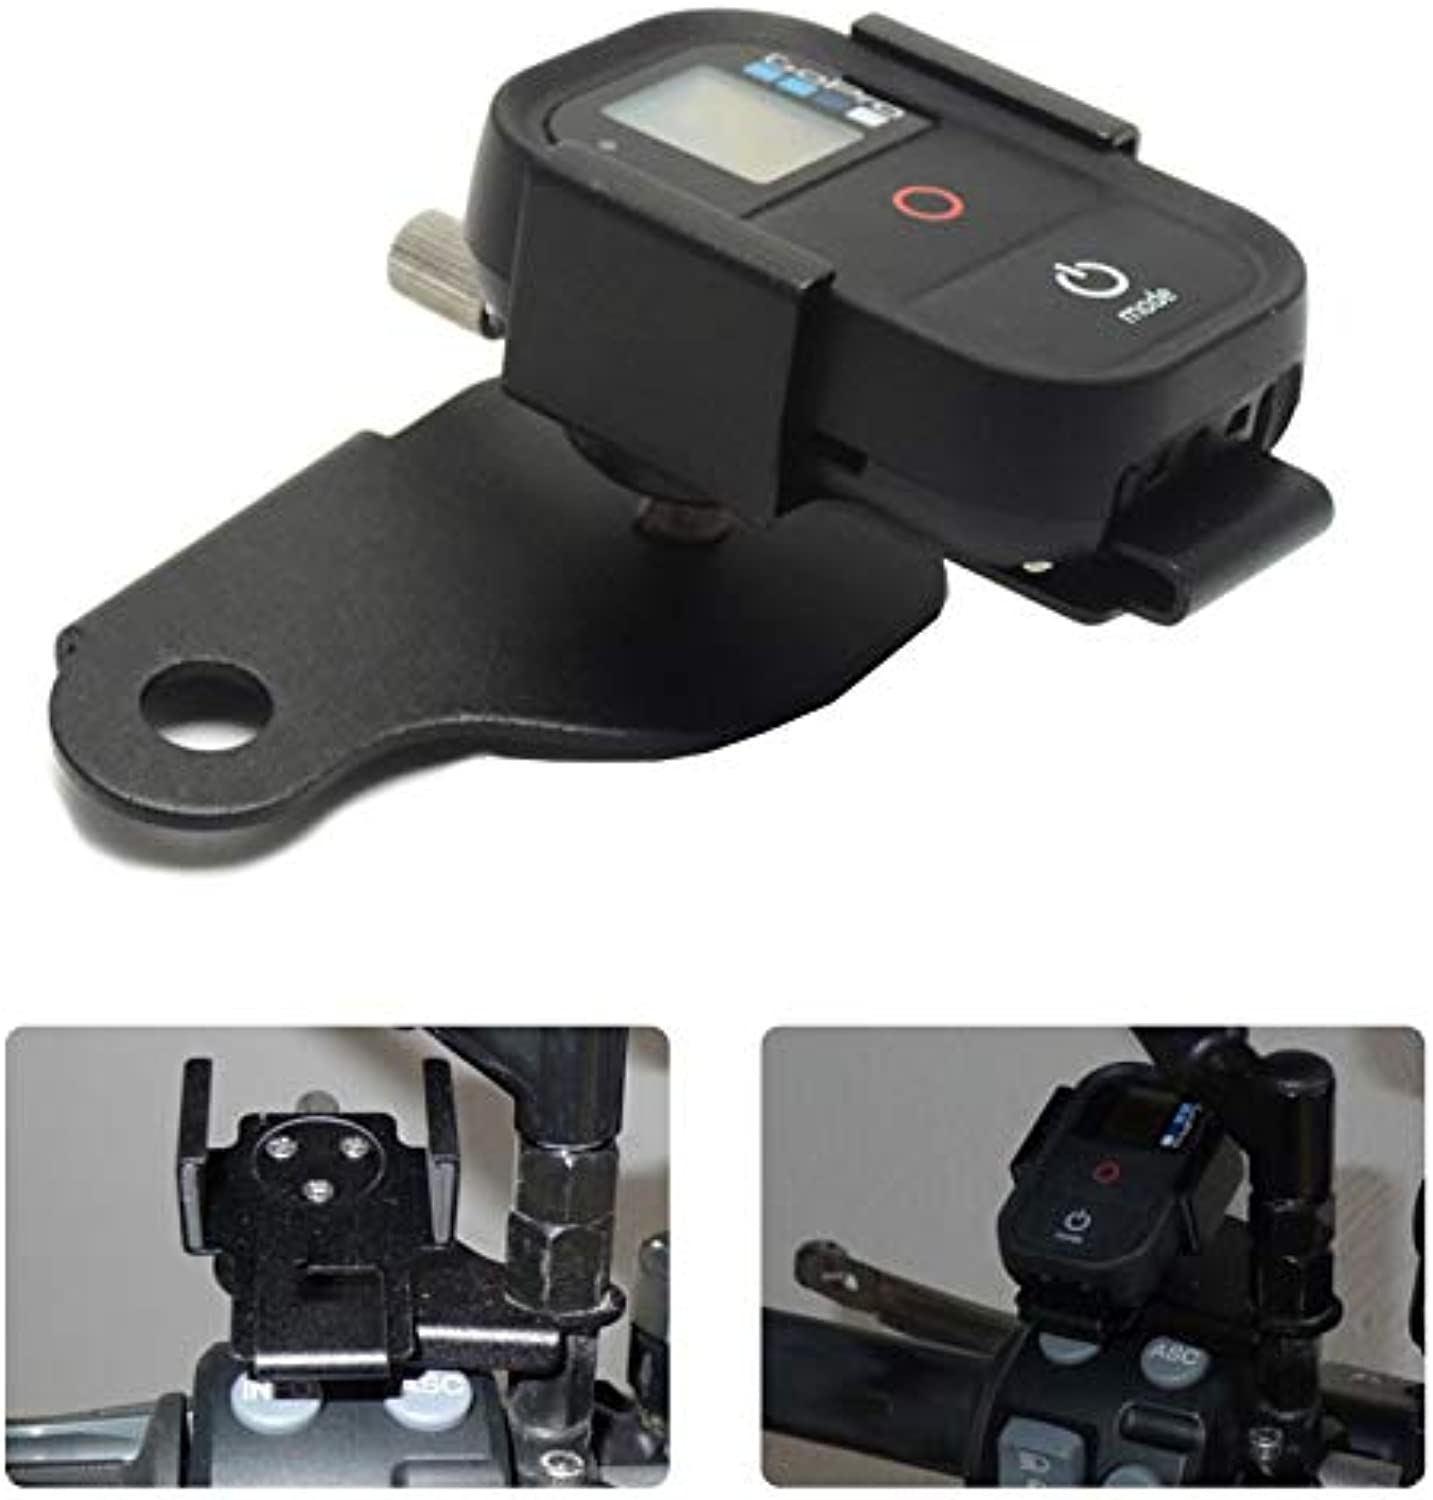 AjaxStore  for BMW R1200GS Front Bracket for GoPro Remote Control Bracket F700GS F800GS ADV K1200R 2013 2014 2015 After Market